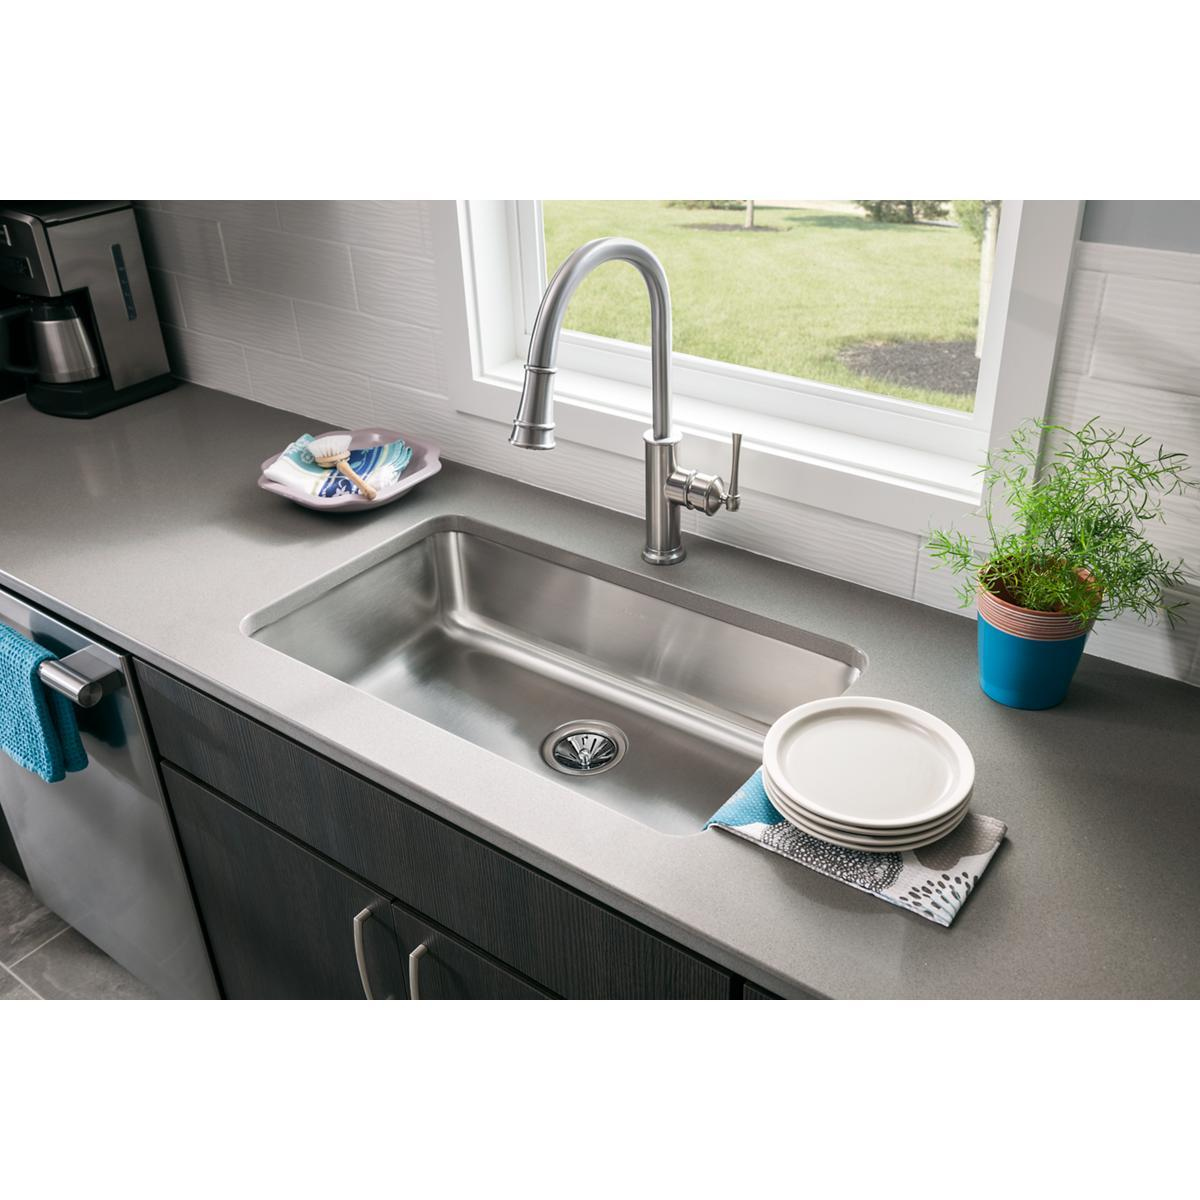 Elkay Explore Single Hole Kitchen Faucet with Pull-down Spray and Forward Only Lever Handle-DirectSinks